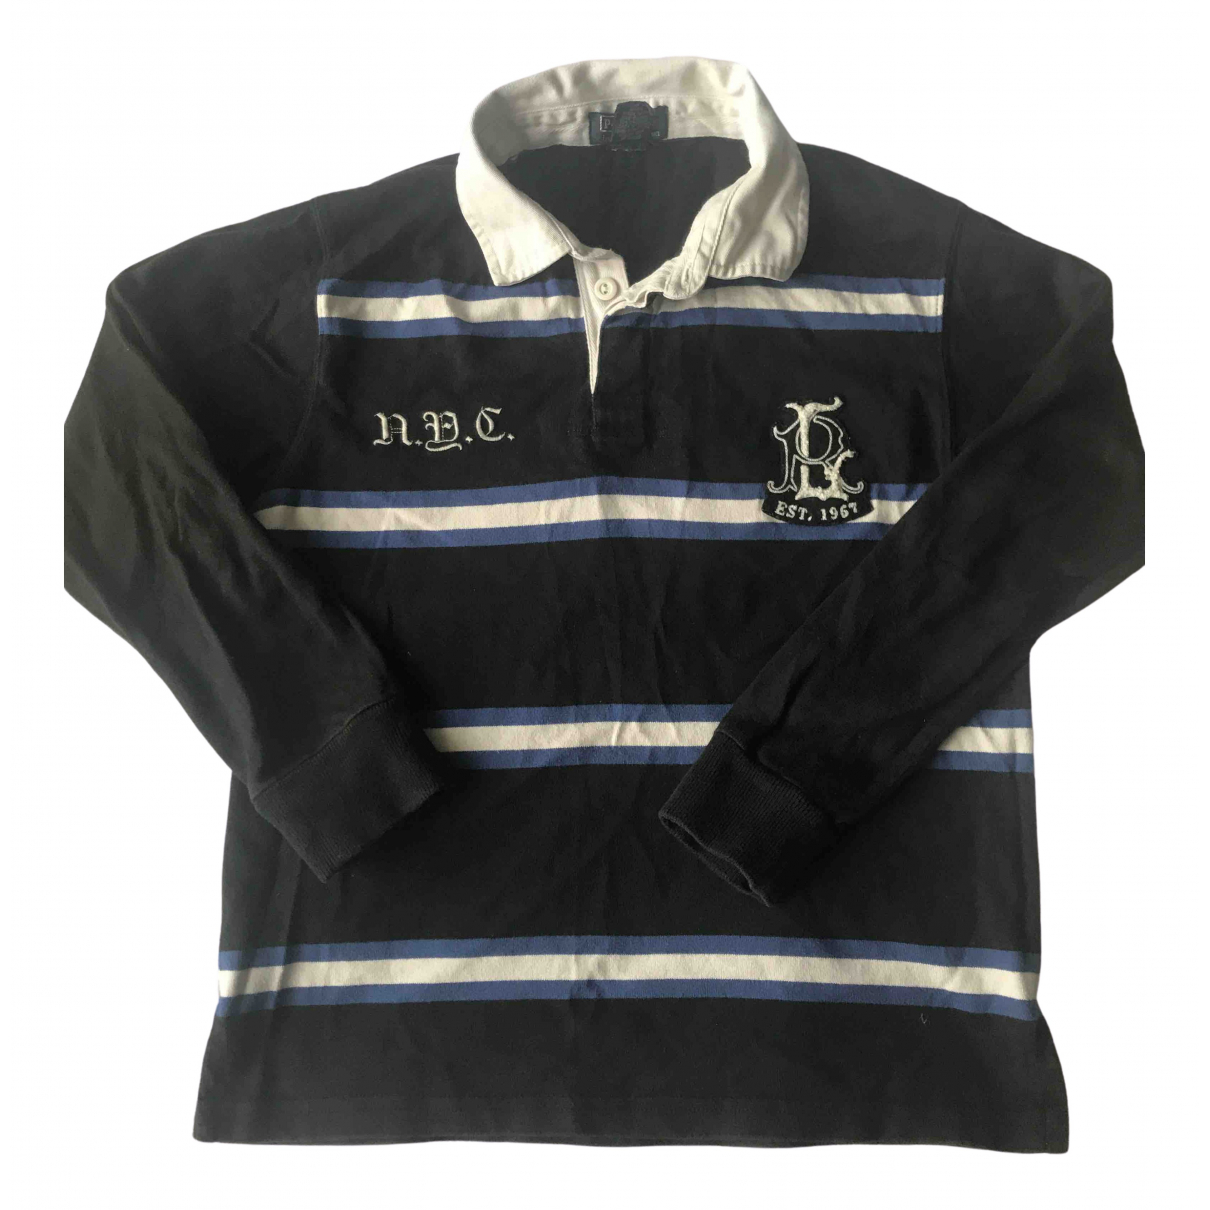 Polo Ralph Lauren \N Black Cotton  top for Kids 10 years - until 56 inches UK